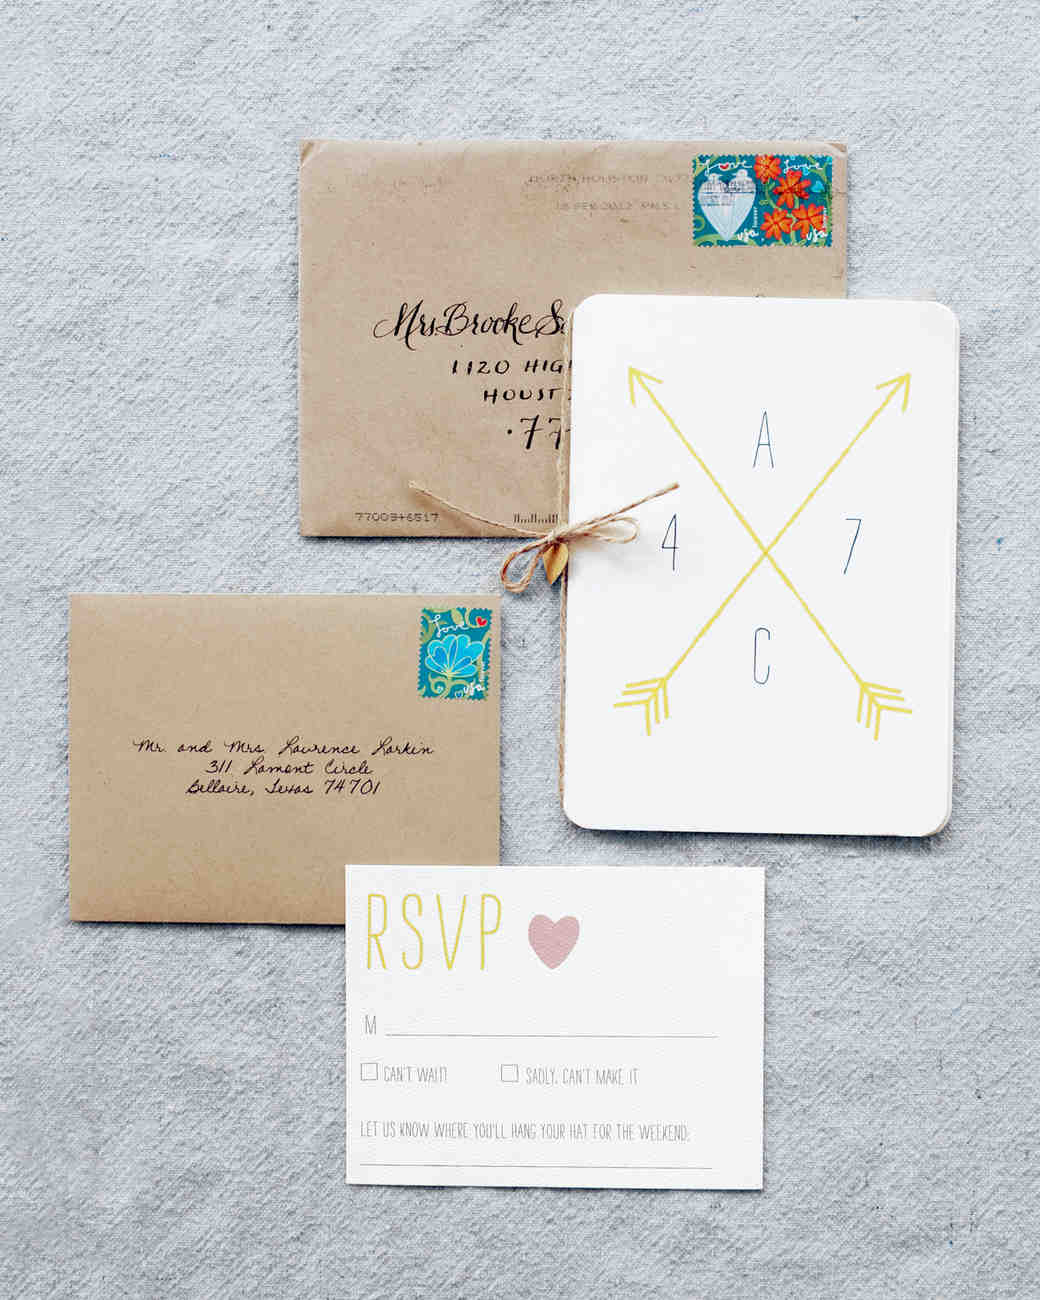 Crossed Arrows: The Symbol of Friendship Is Making Its Mark on Wedding Stationery